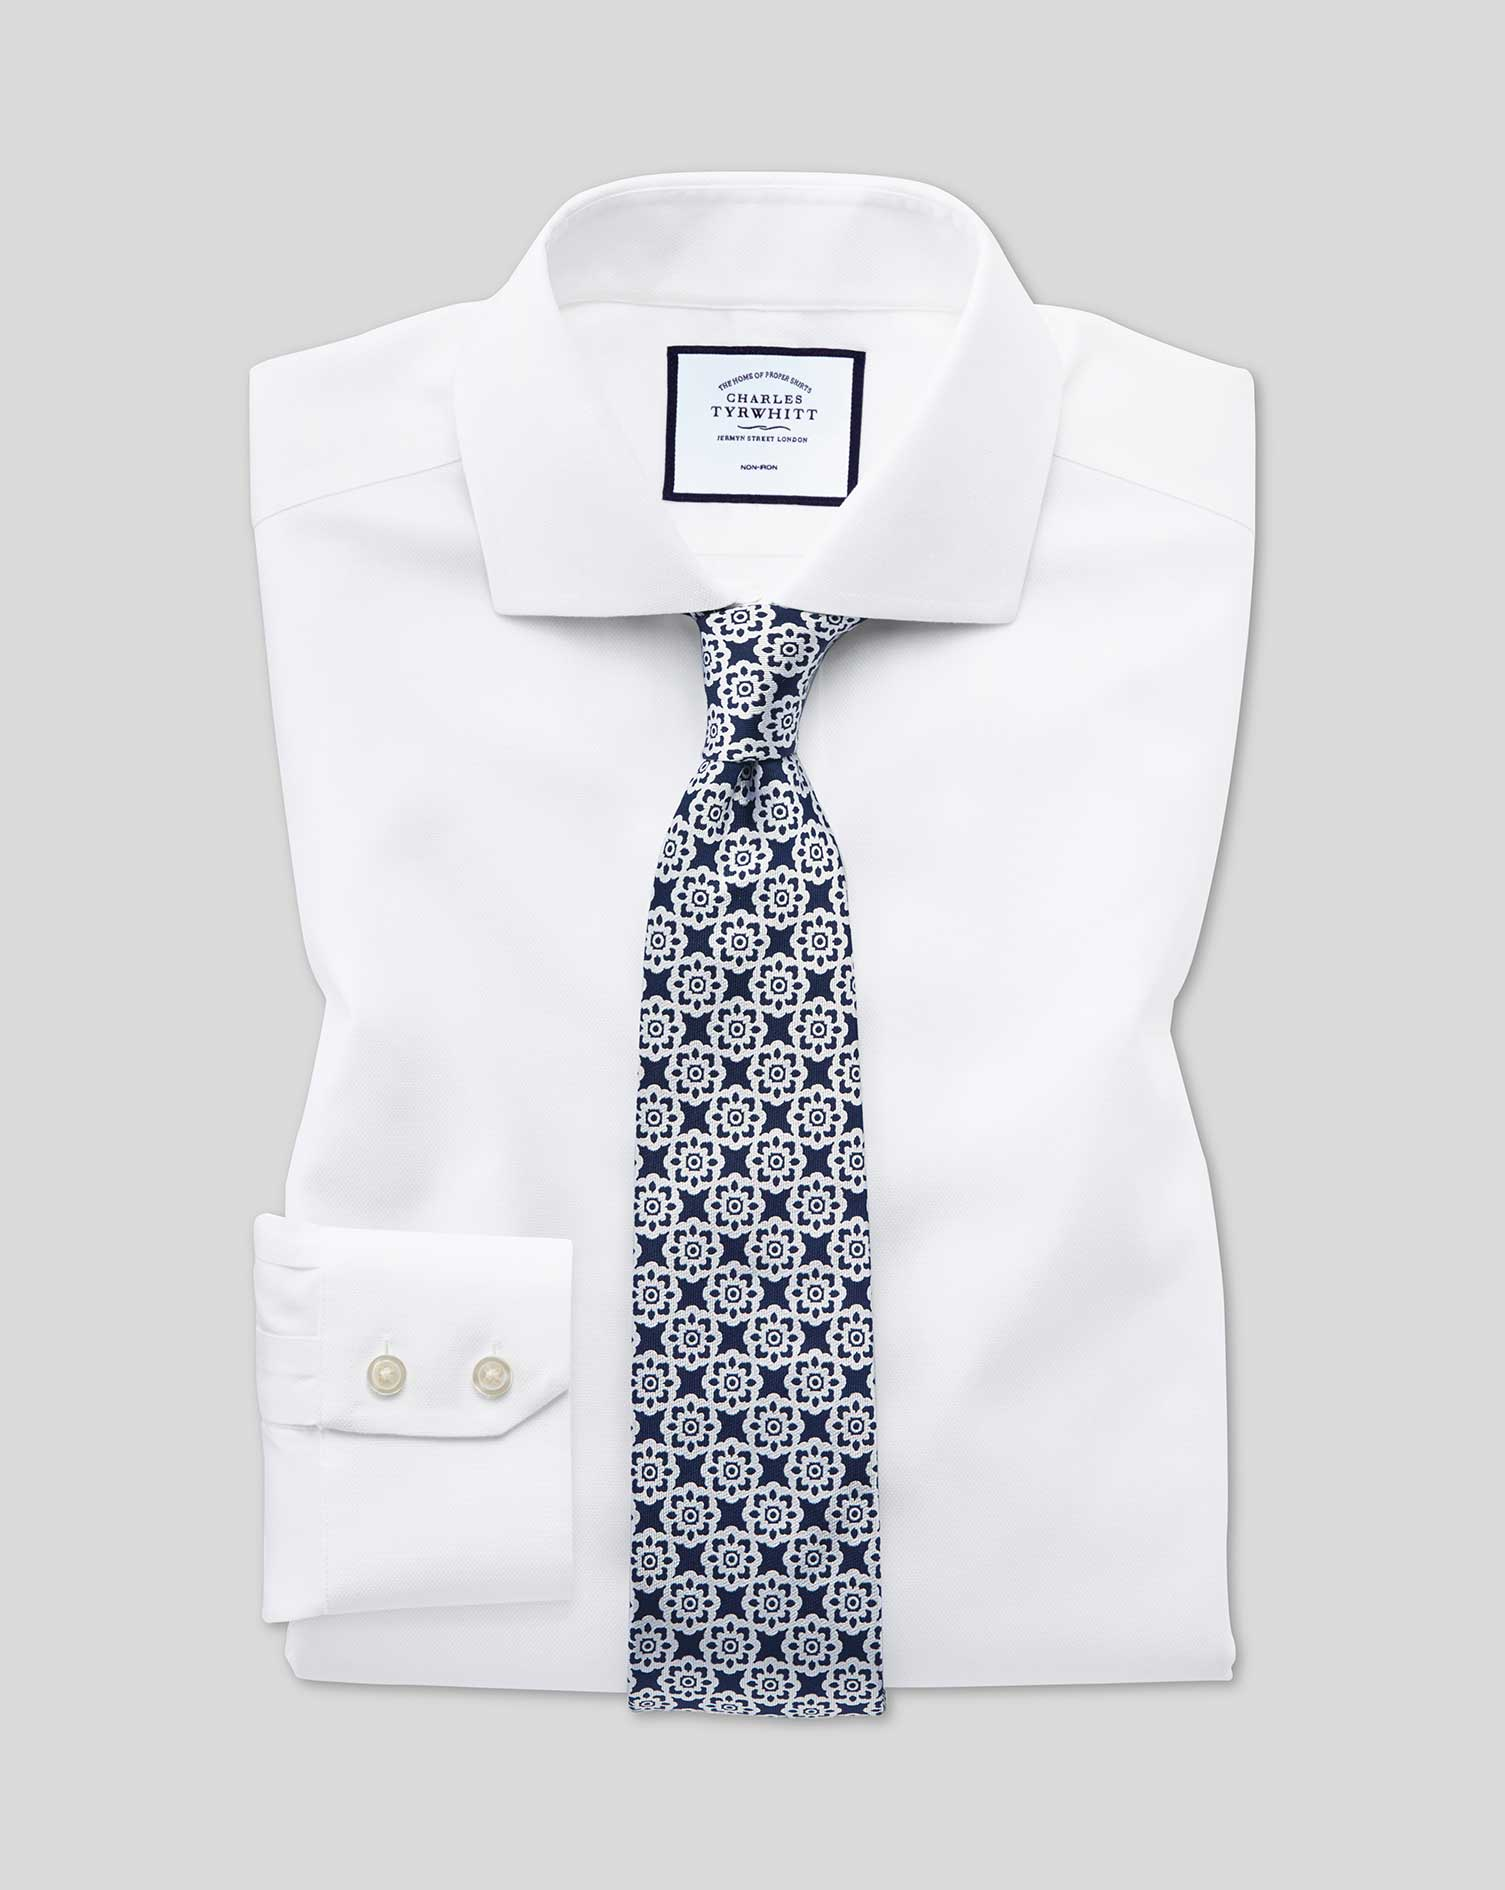 Classic Fit Non-Iron Cut-Away Collar White Oxford Stretch Cotton Formal Shirt Single Cuff Size 17.5/